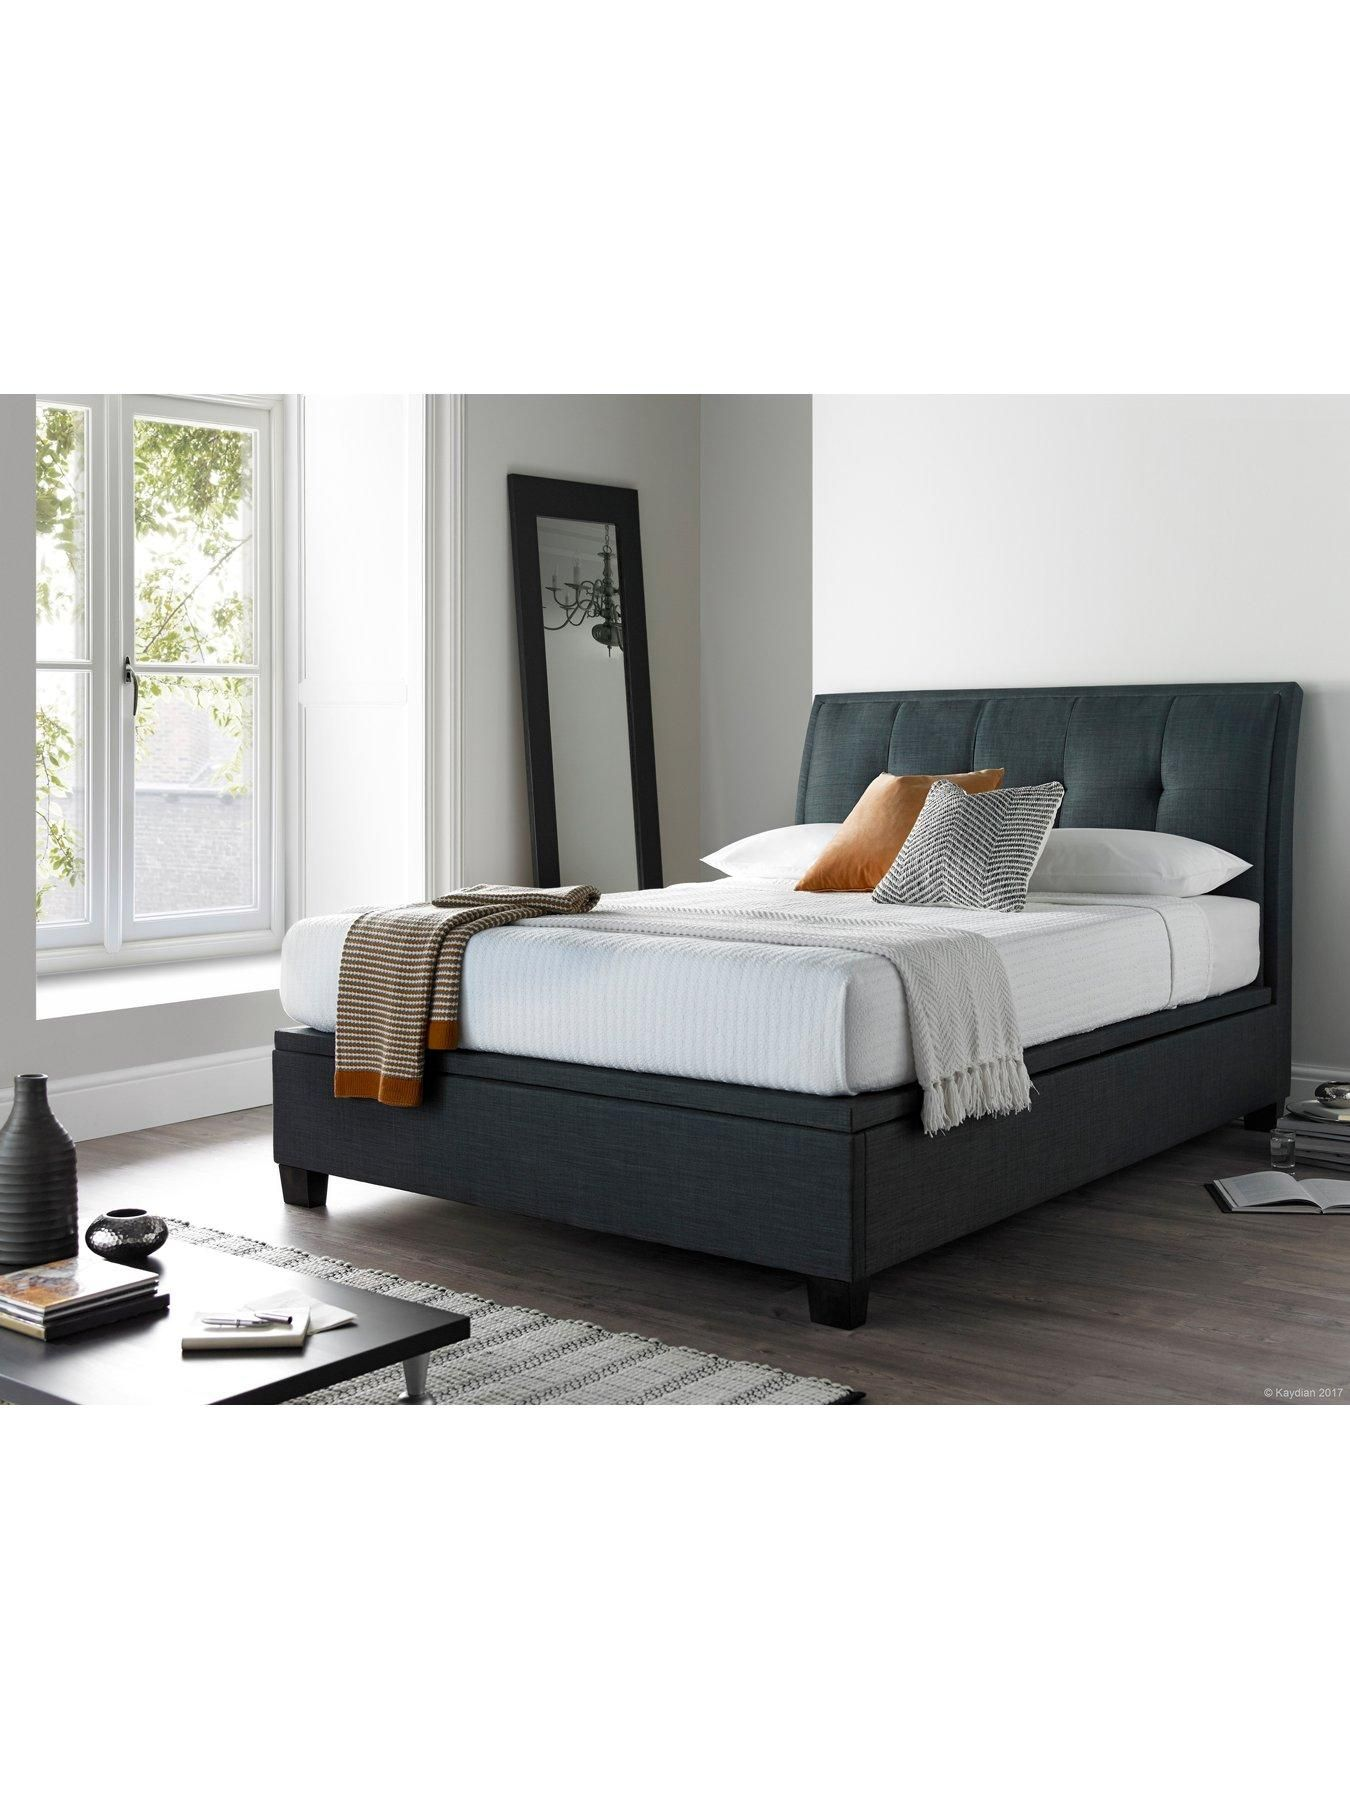 Livingstone Fabric Ottoman Storage Bed Frame Bed Frame With